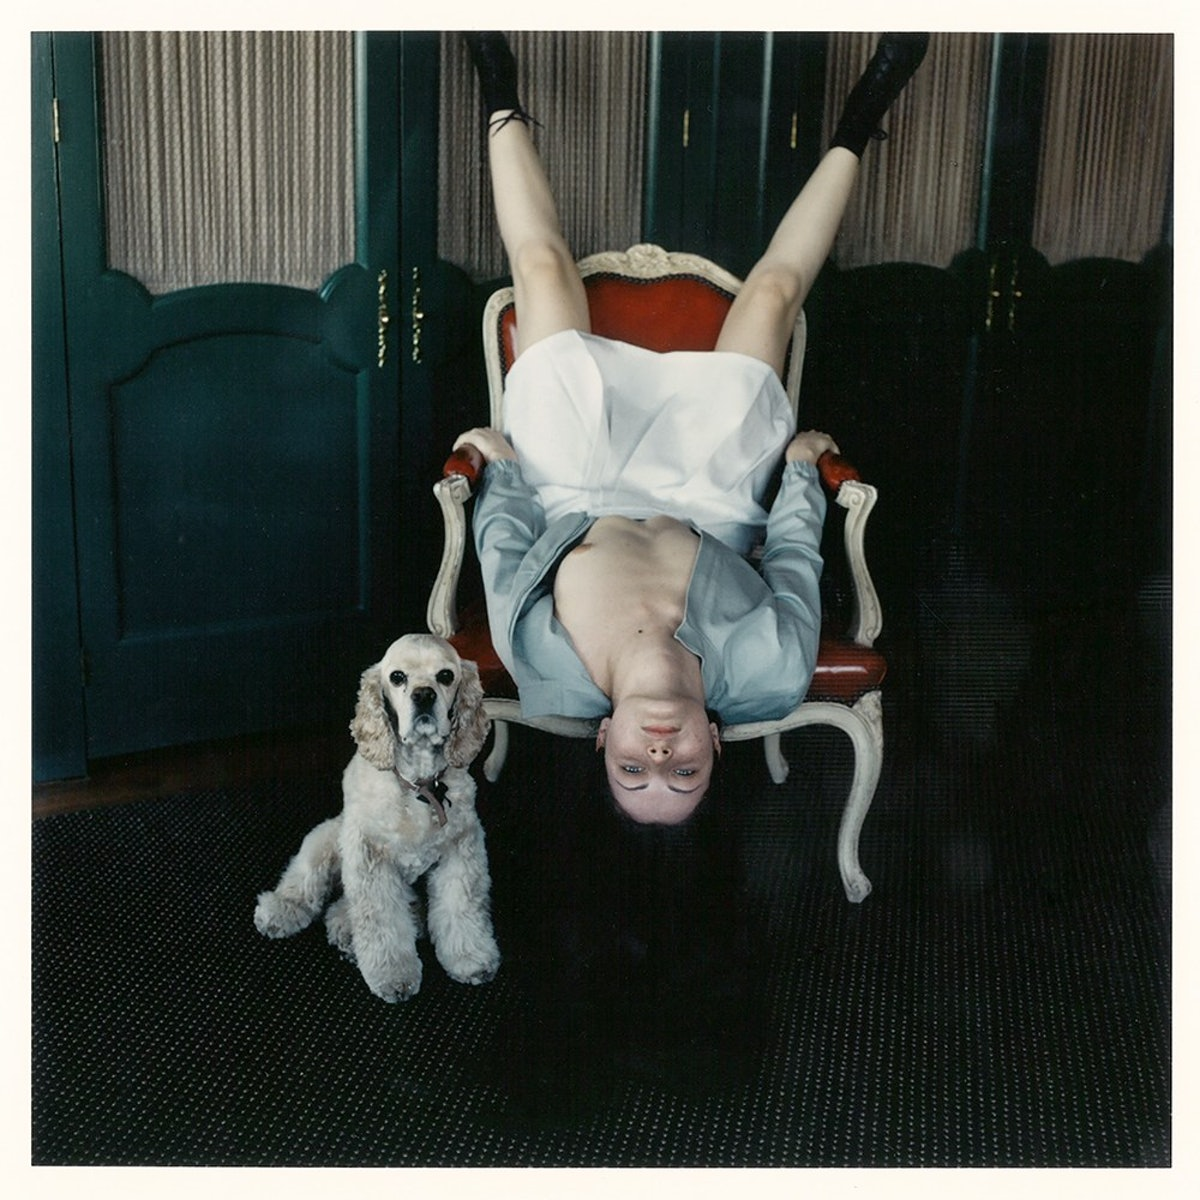 3 Kat Upside Down in Chair with Dog.jpg